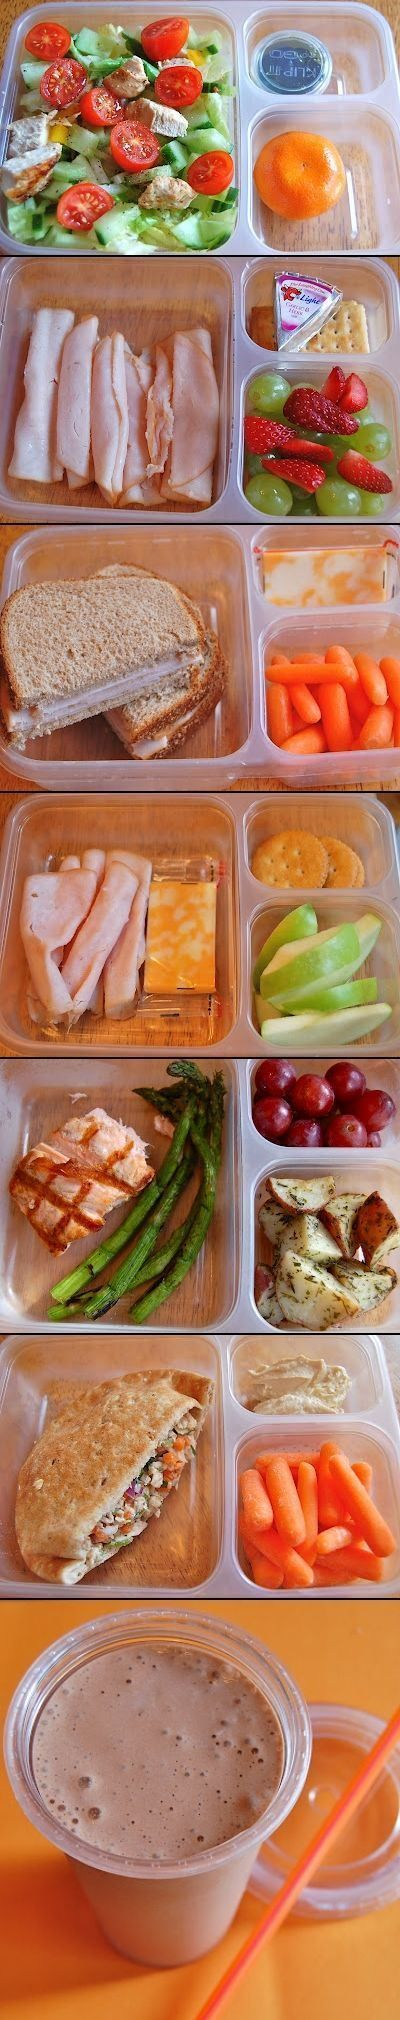 211598882466096369 Ideas For Packing A Delicious, Healthy Lunch.